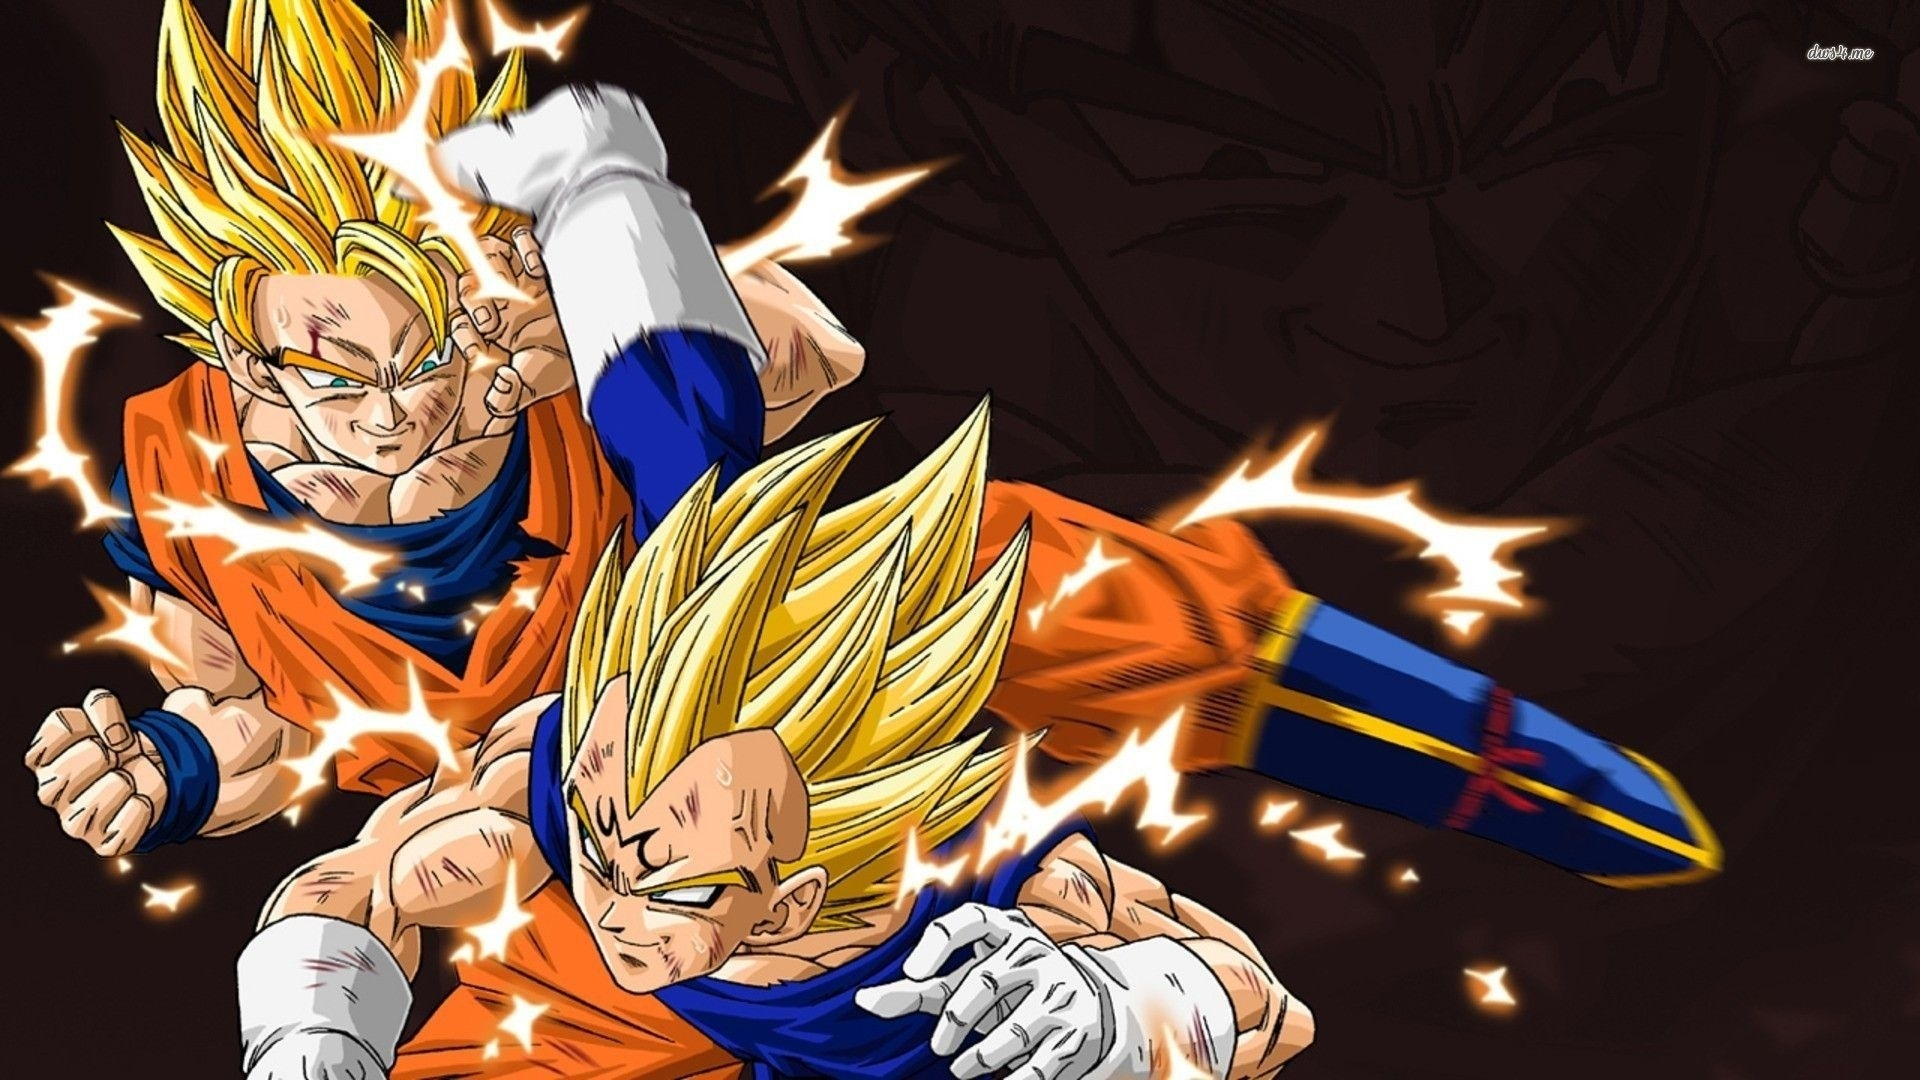 1608602, dragon ball z category - free screensaver wallpapers for